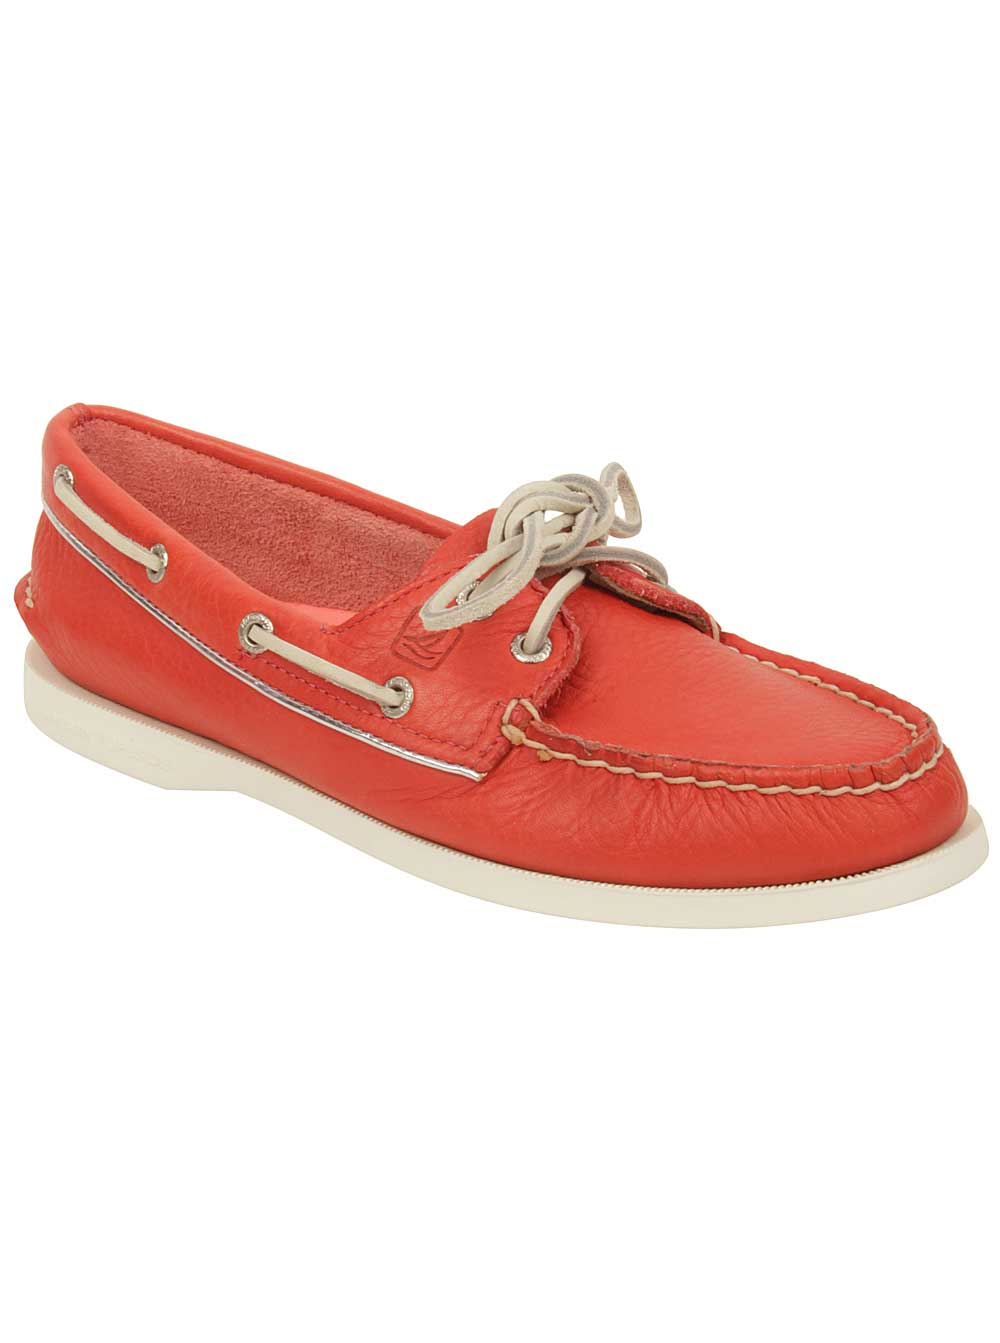 Sperry Womens A/O Boat Shoes in Neon Coral/Silver